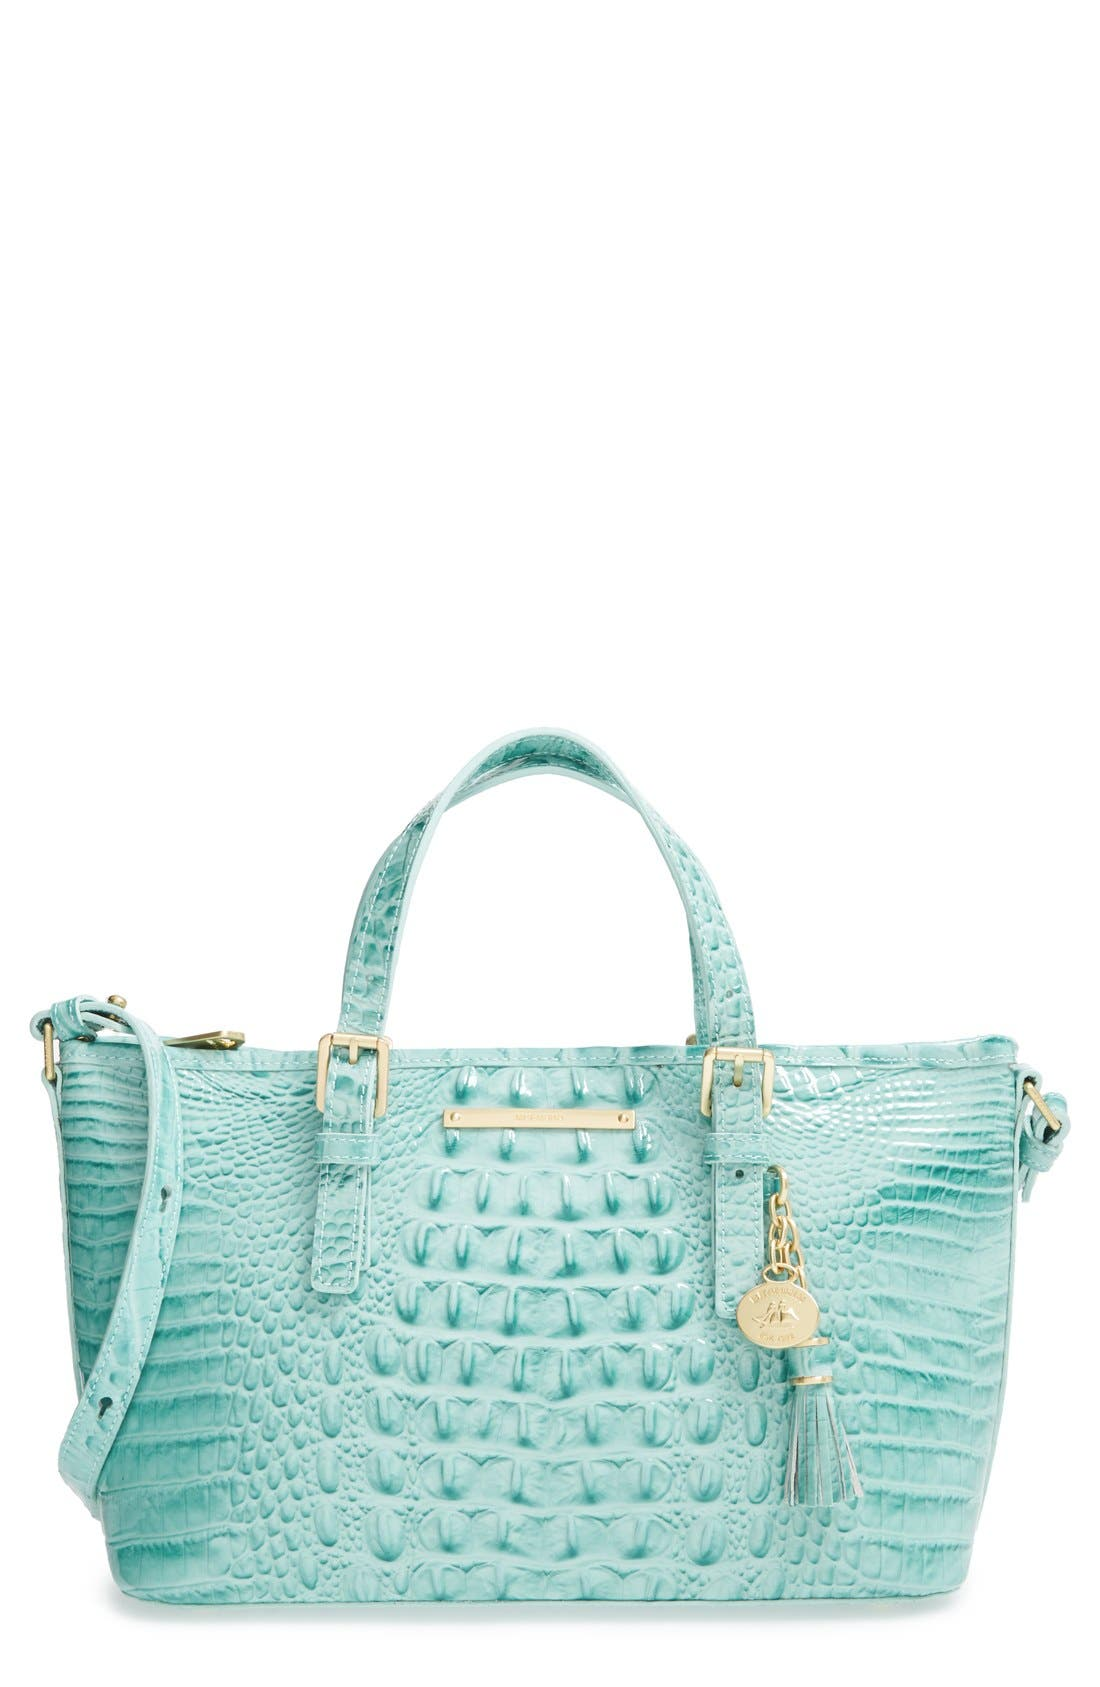 Alternate Image 1 Selected - Brahmin 'Melbourne - Mini Asher' Croc Embossed Leather Tote